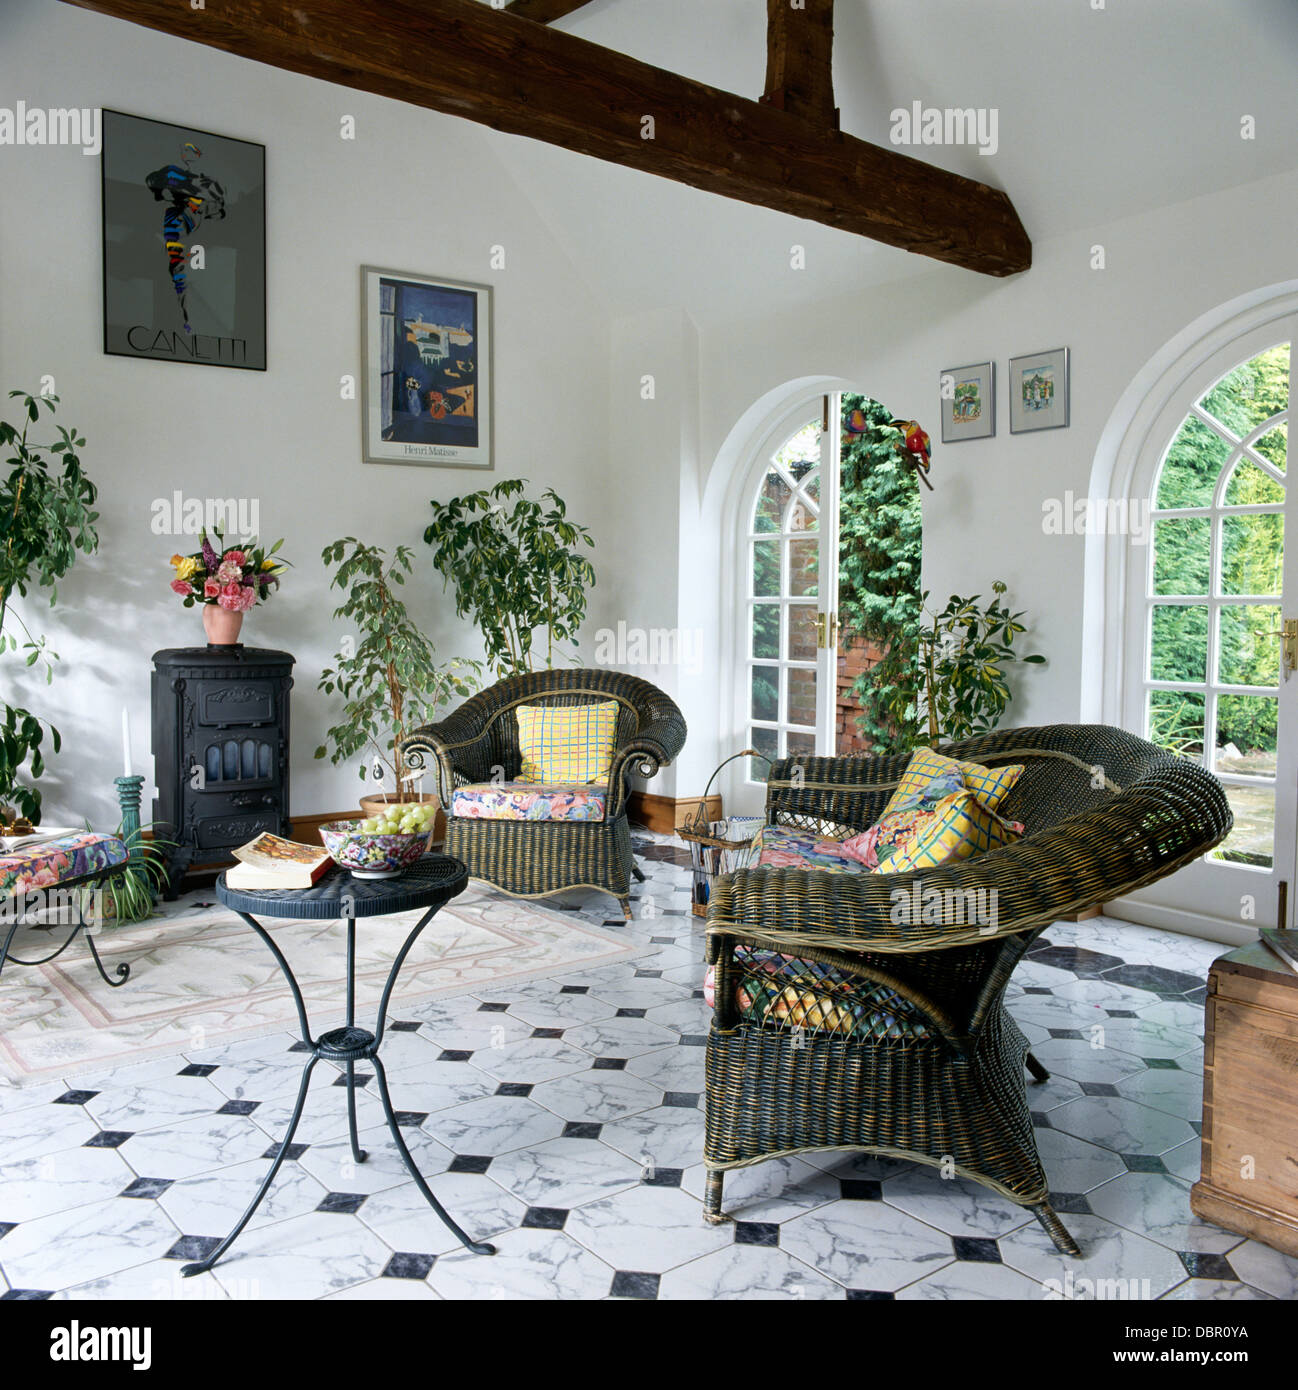 grey wicker armchairs and small metal table in white